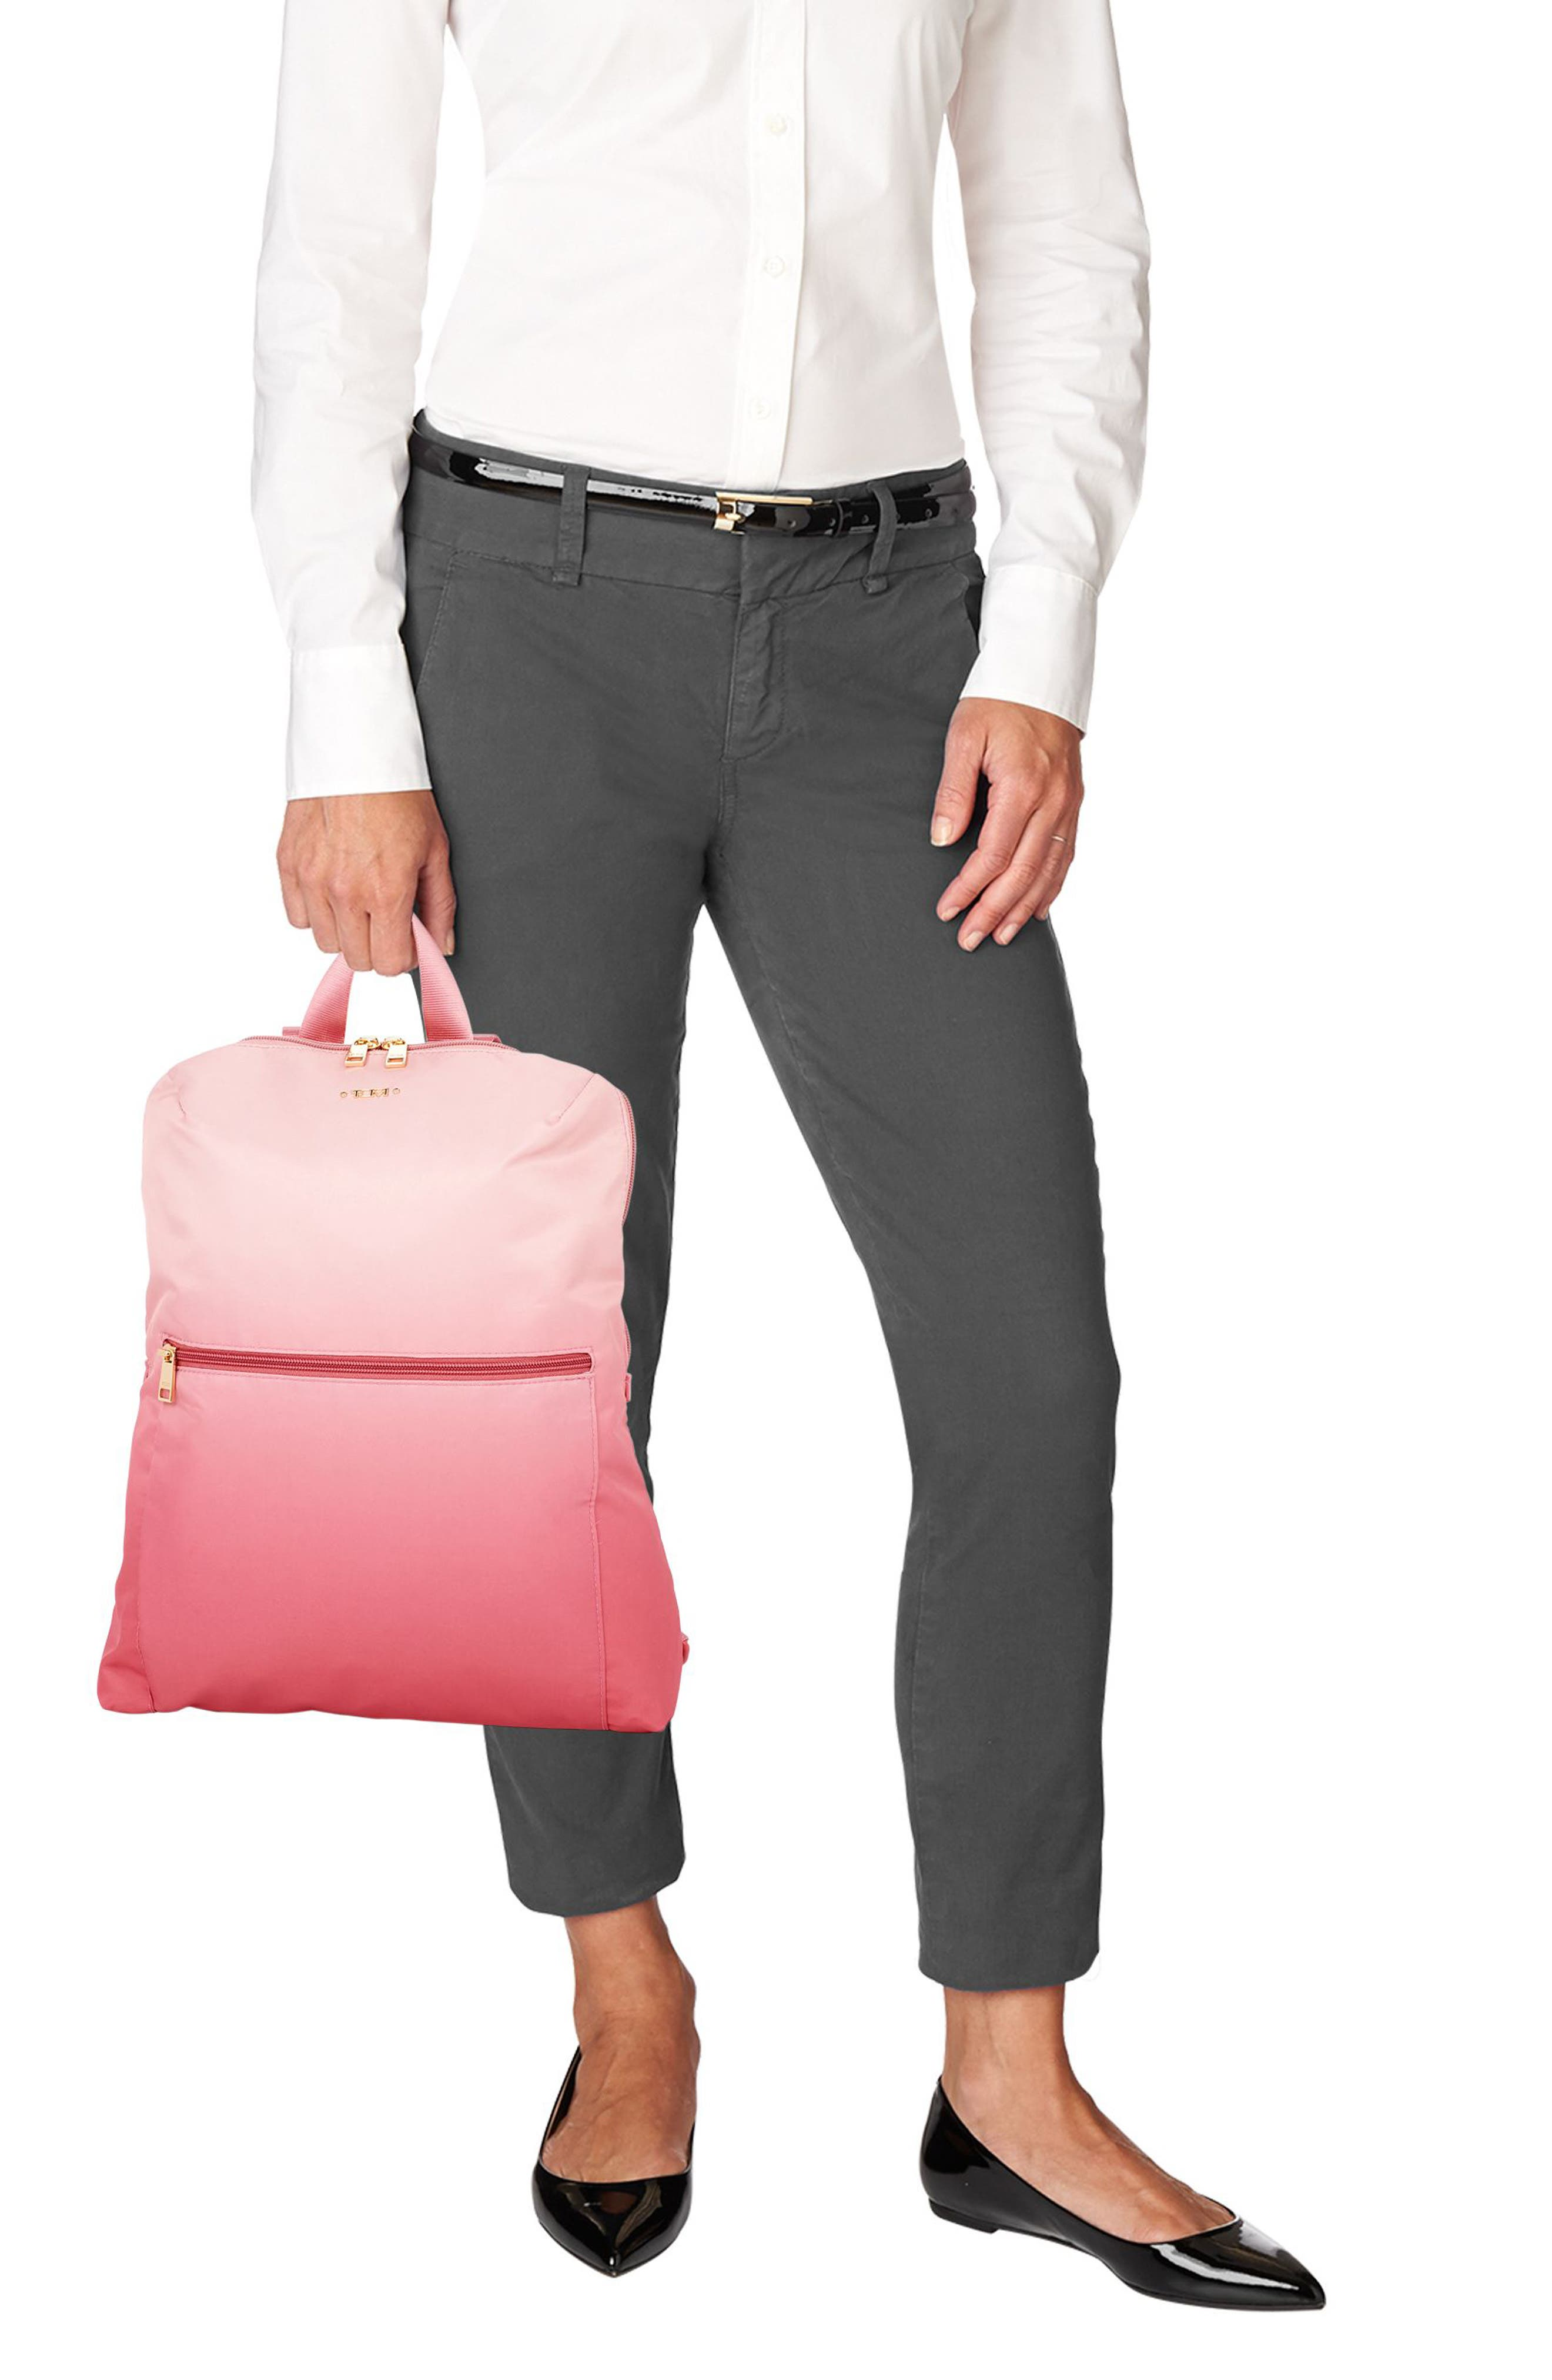 Voyageur - Just in Case Nylon Travel Backpack,                             Alternate thumbnail 2, color,                             PINK OMBRE